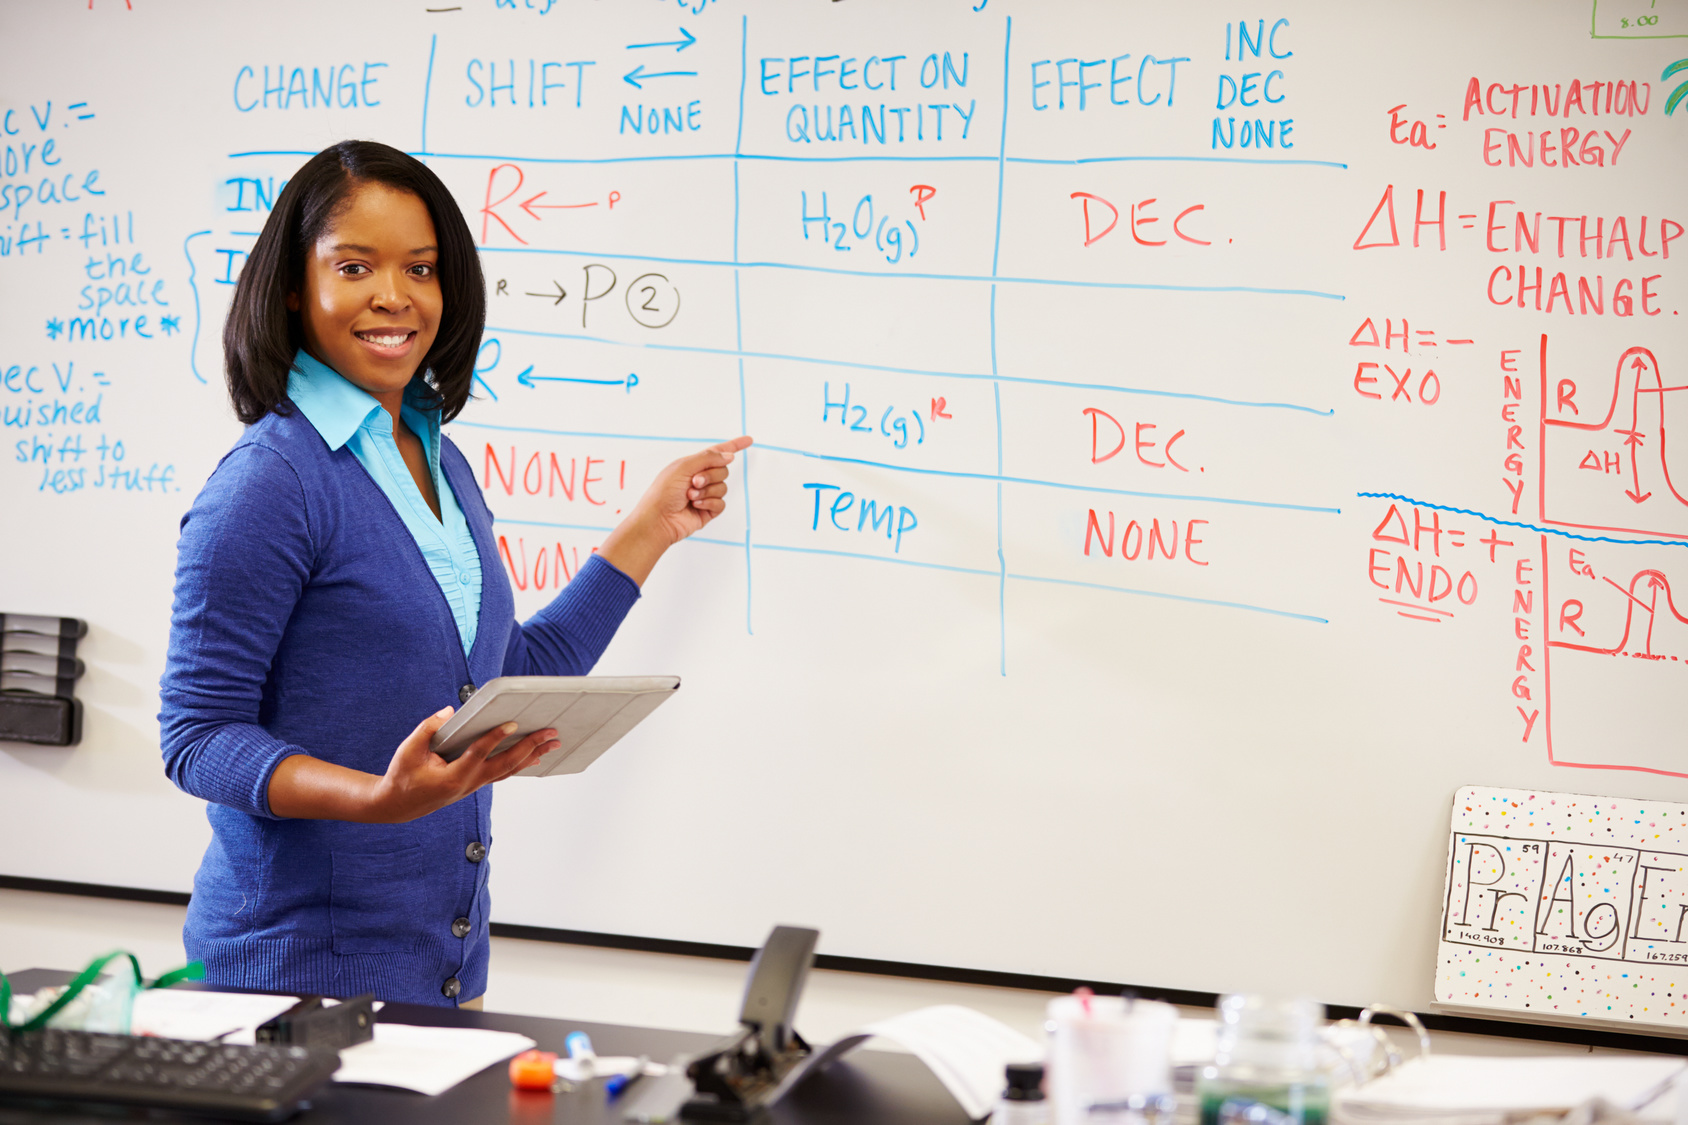 lesson planning for teachers is a key skill to have, especially in the classroom!